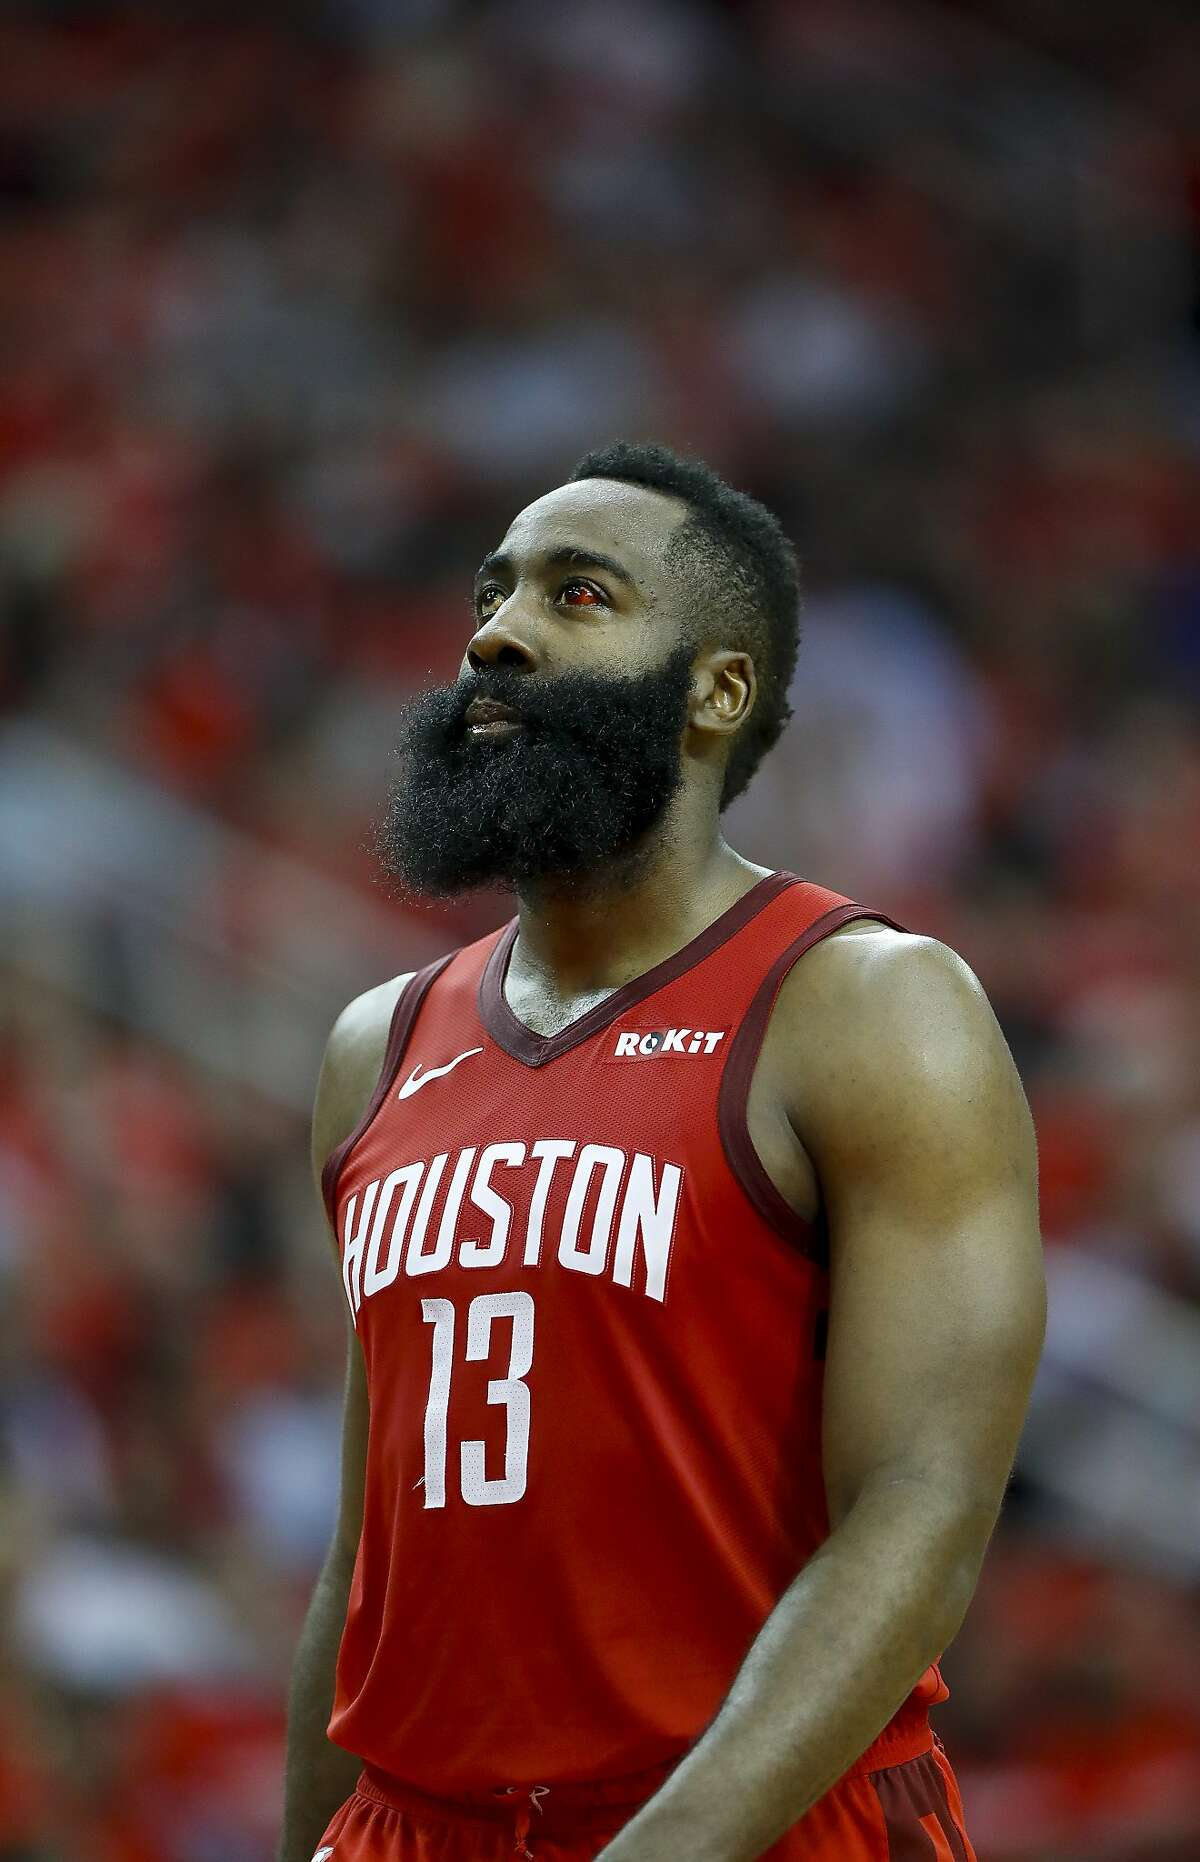 >>>Checkout James Harden and other famous Houston athletes before they had beards.